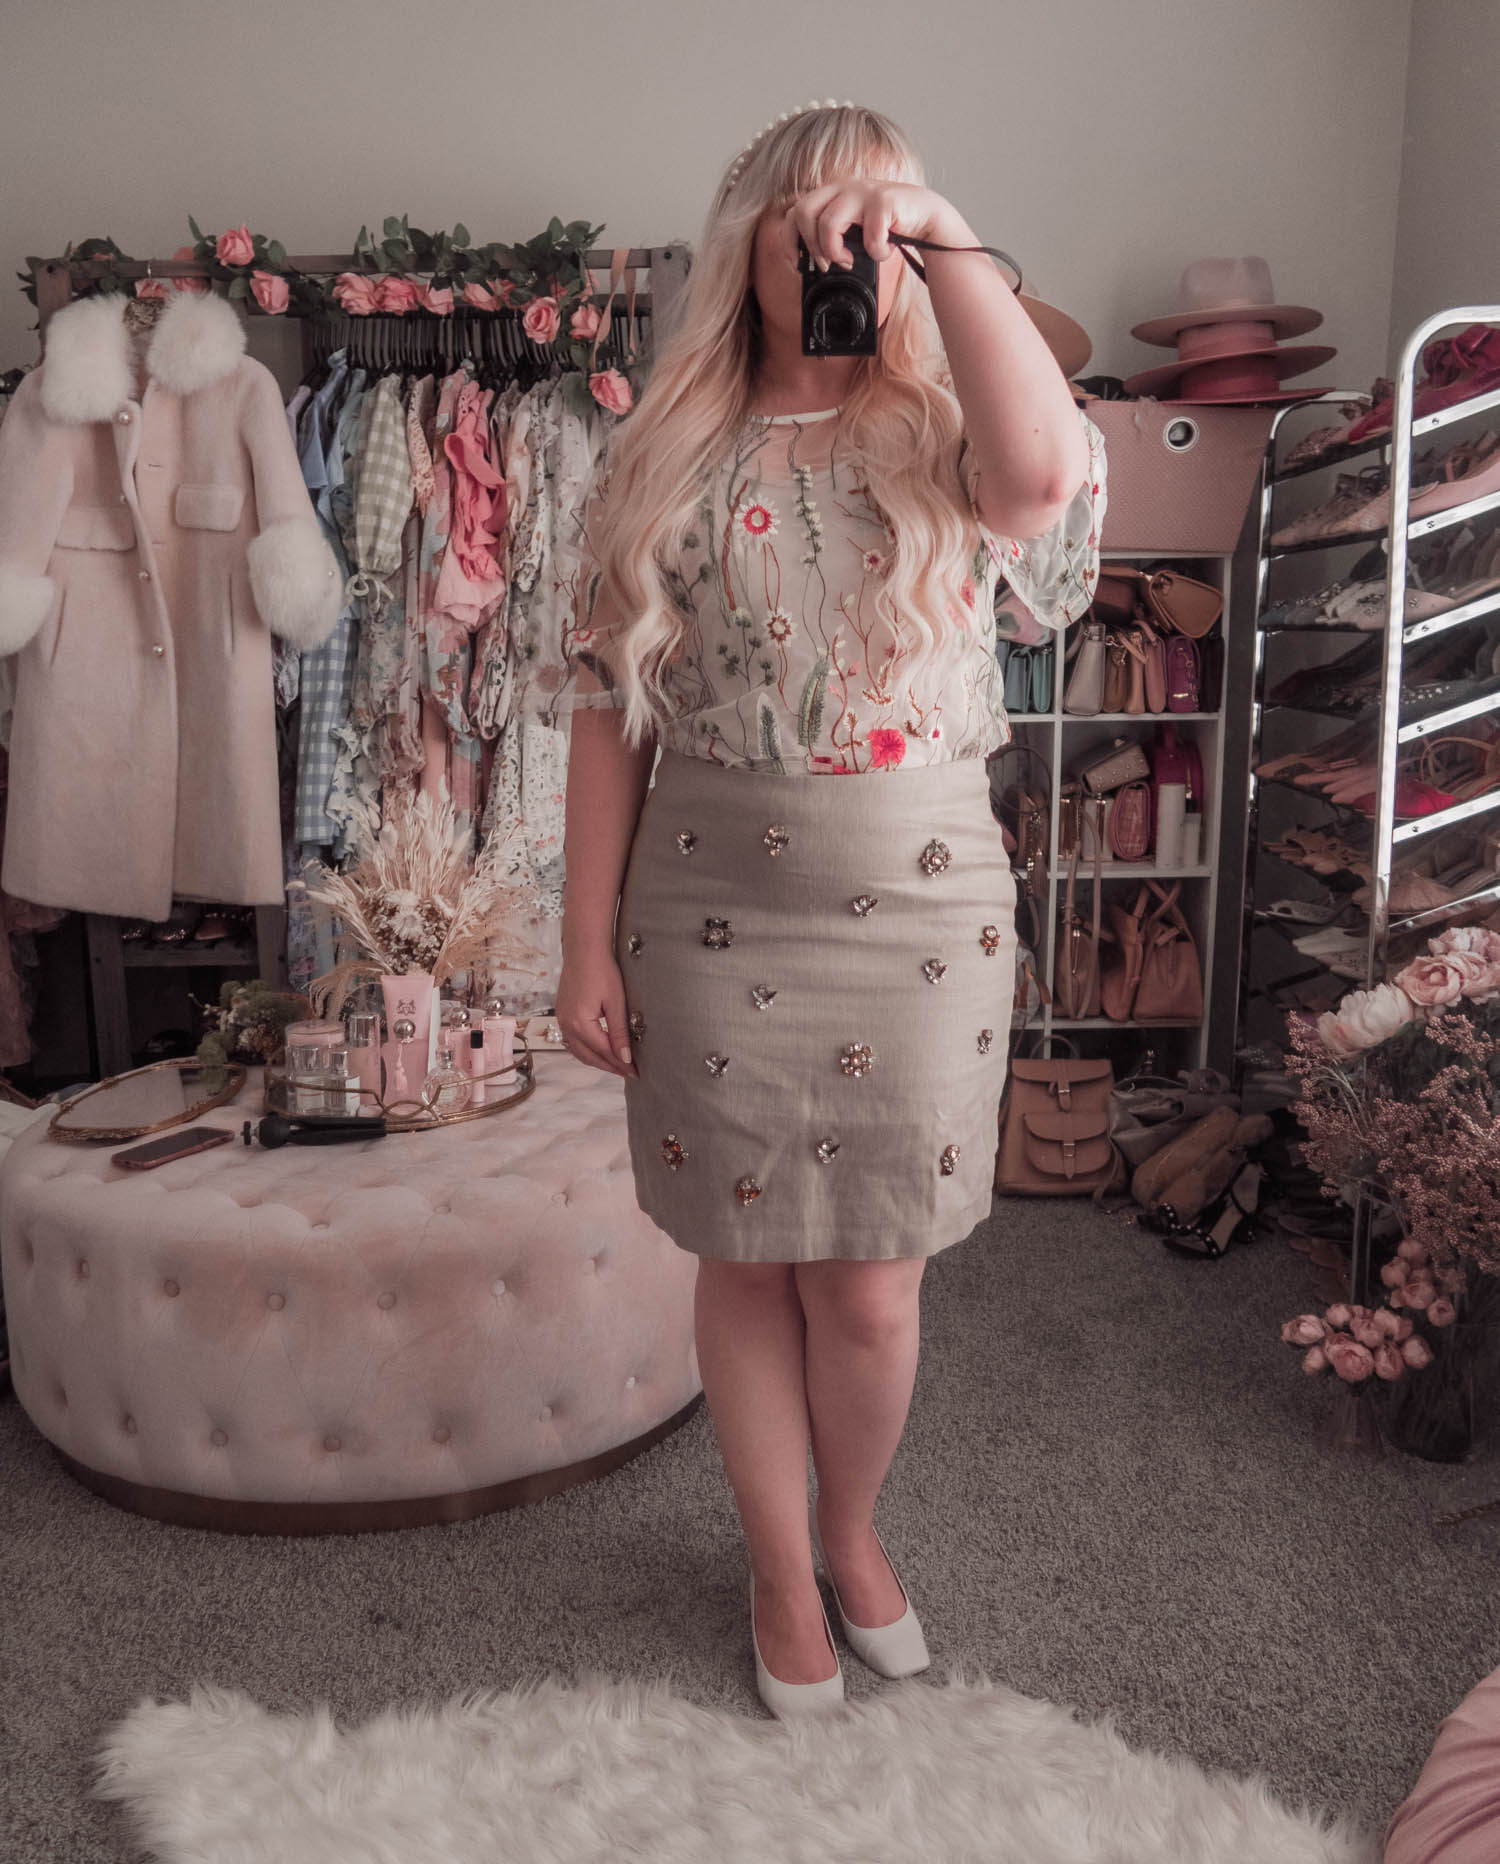 Feminine Fashion Blogger Elizabeth Hugen of Lizzie in Lace shares an honest Wardrobe Box Review, a Sustainable Fashion Subscription Box